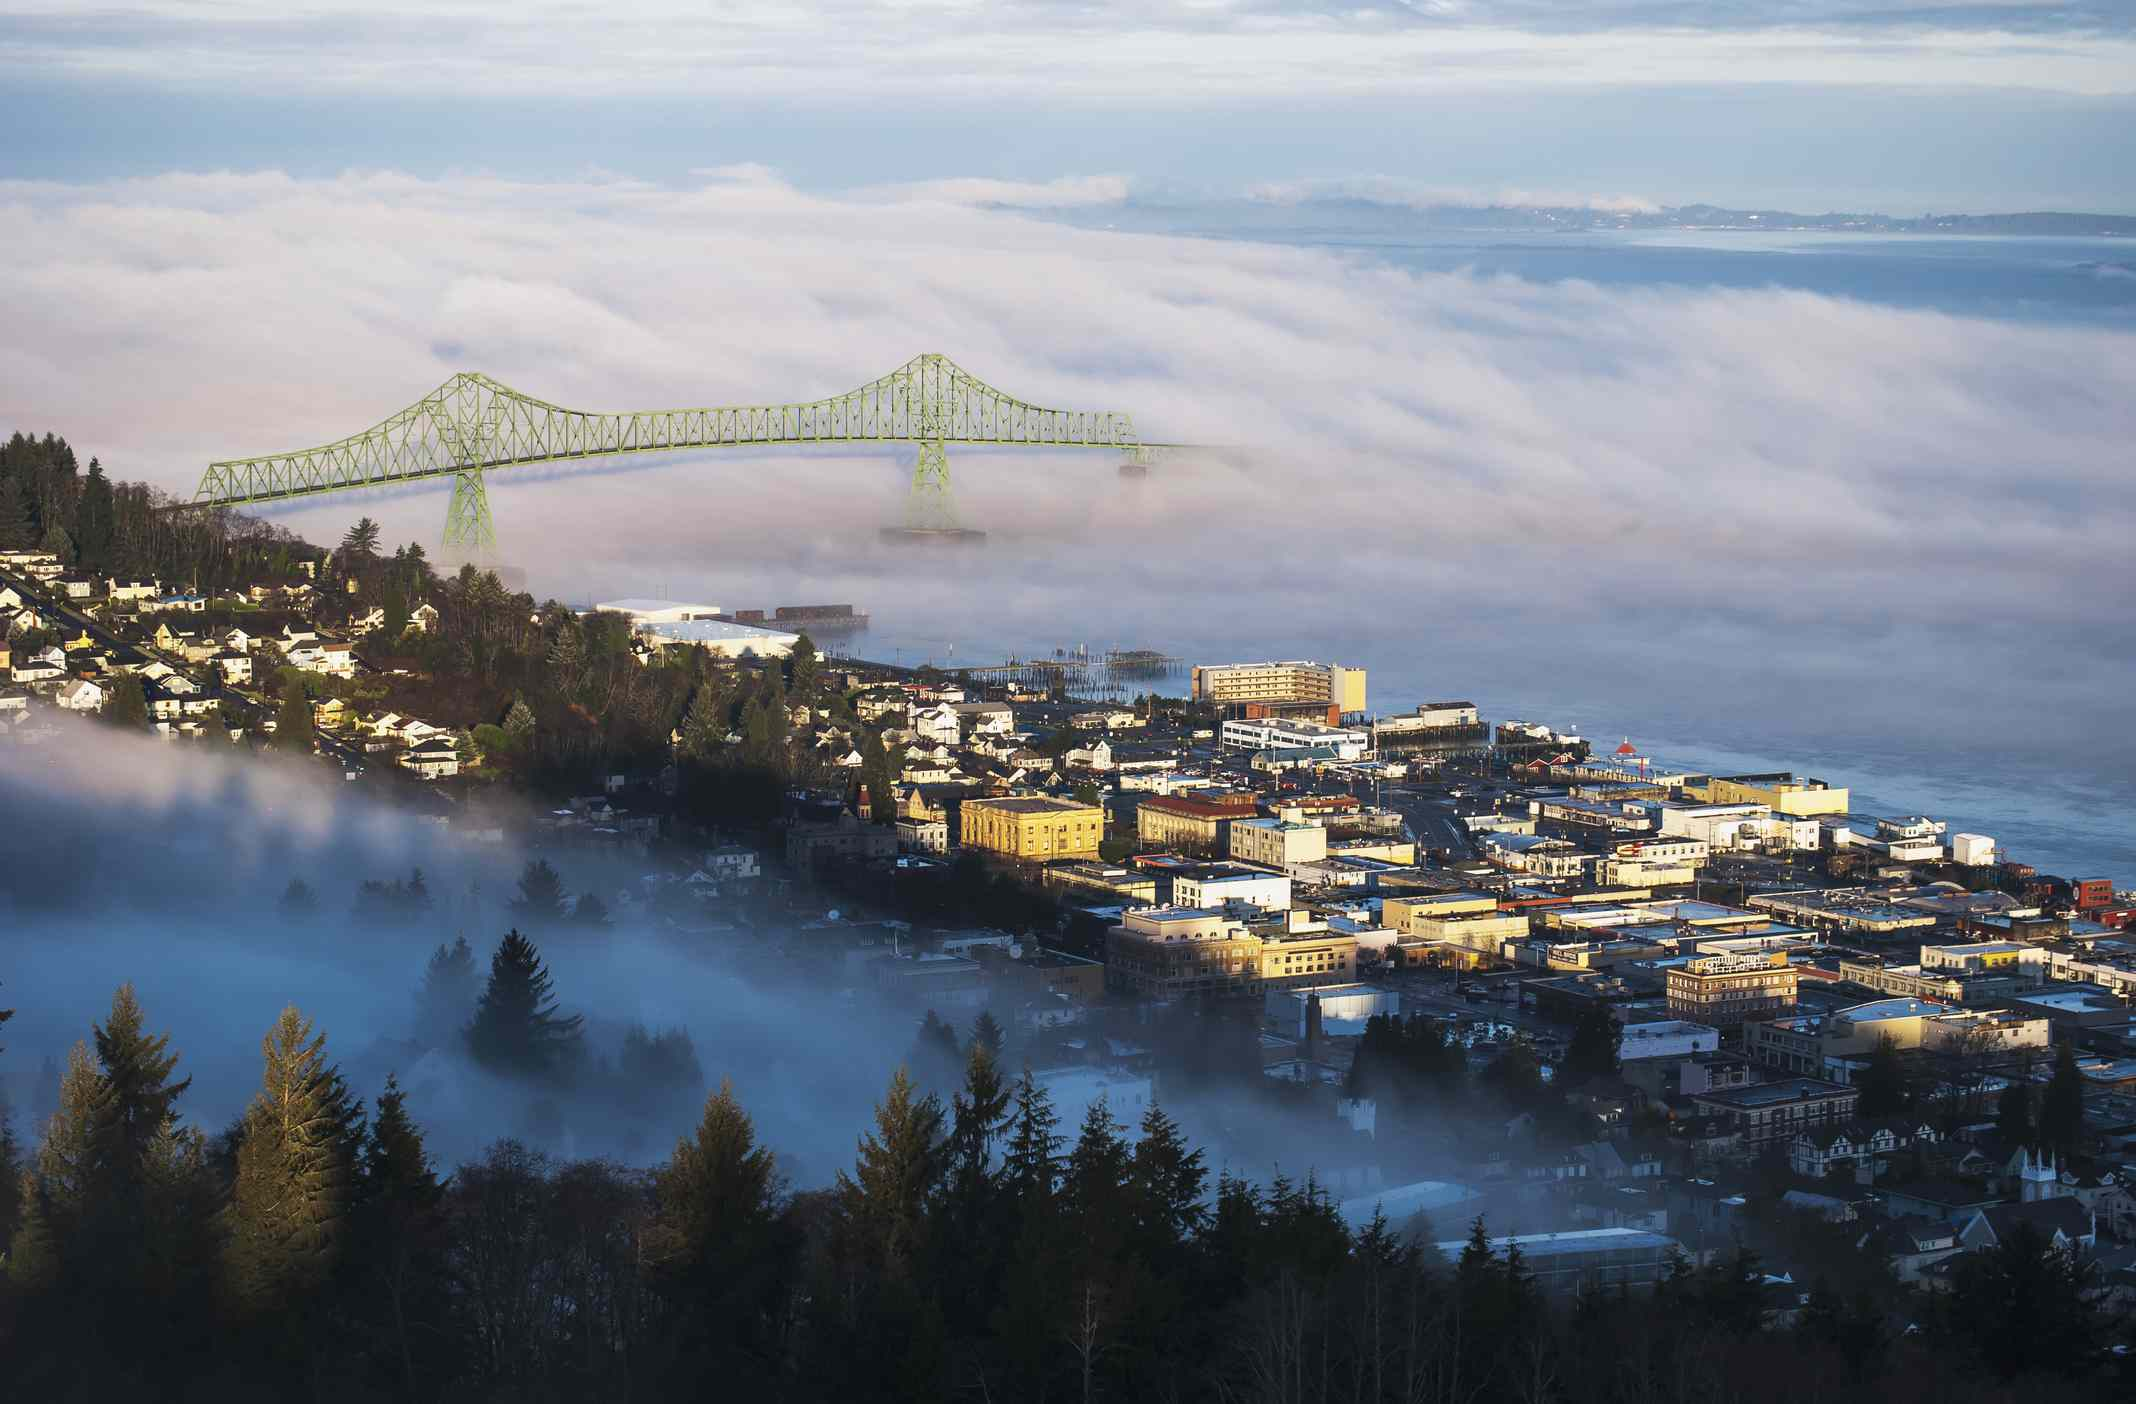 Fog hovers over the Columbia River